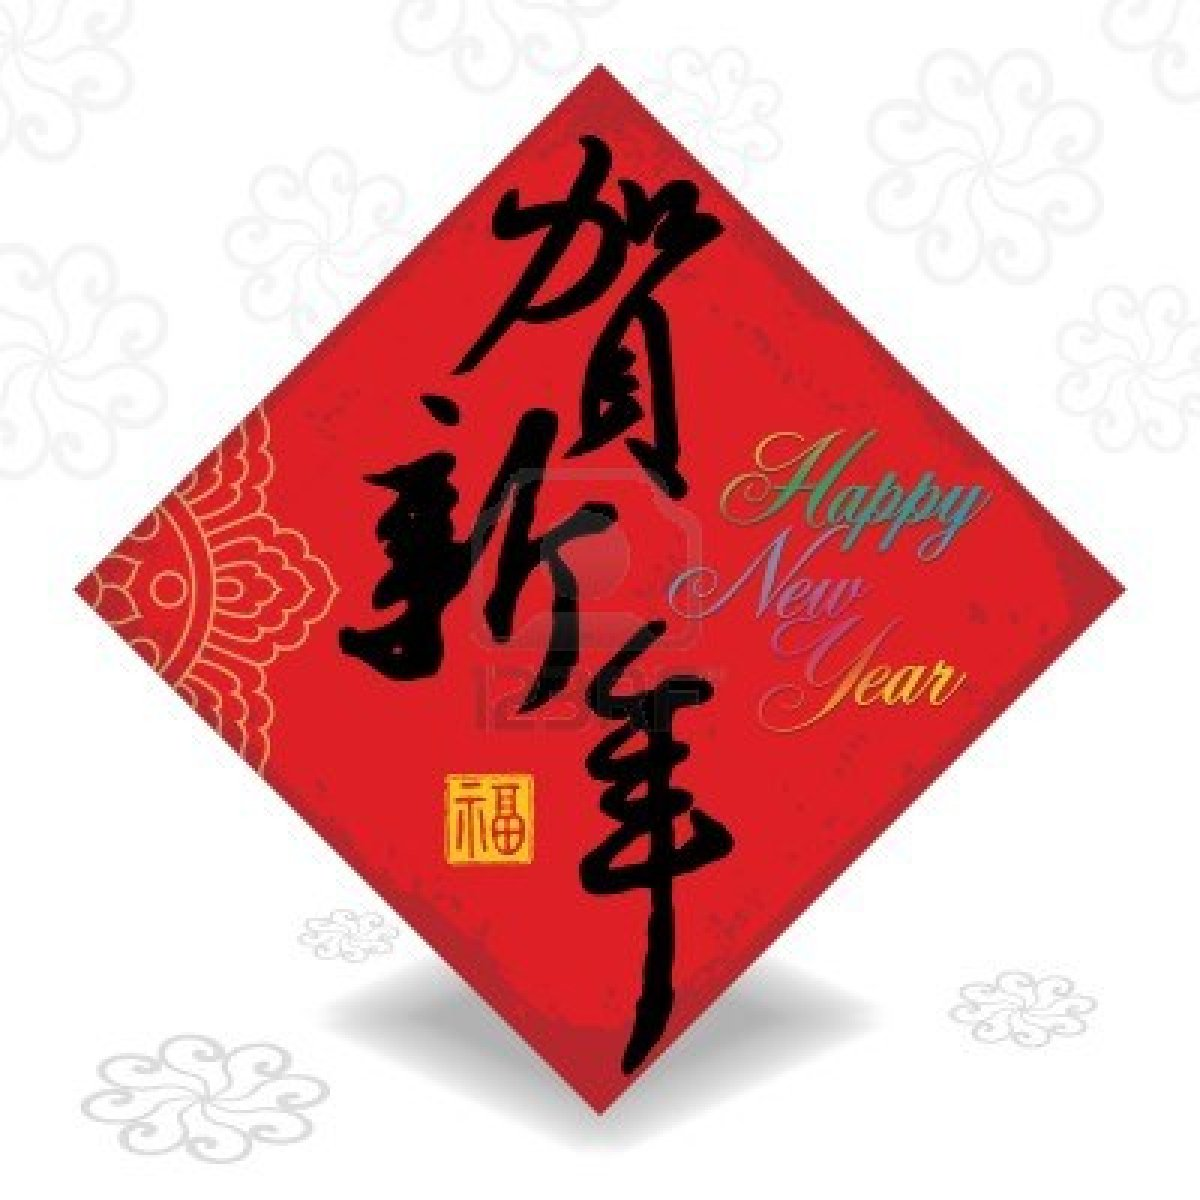 chinesenewyeargreetingcardbackgroundhapplynewyearjpg. 1200 x 1200.Cards For Chinese New Year